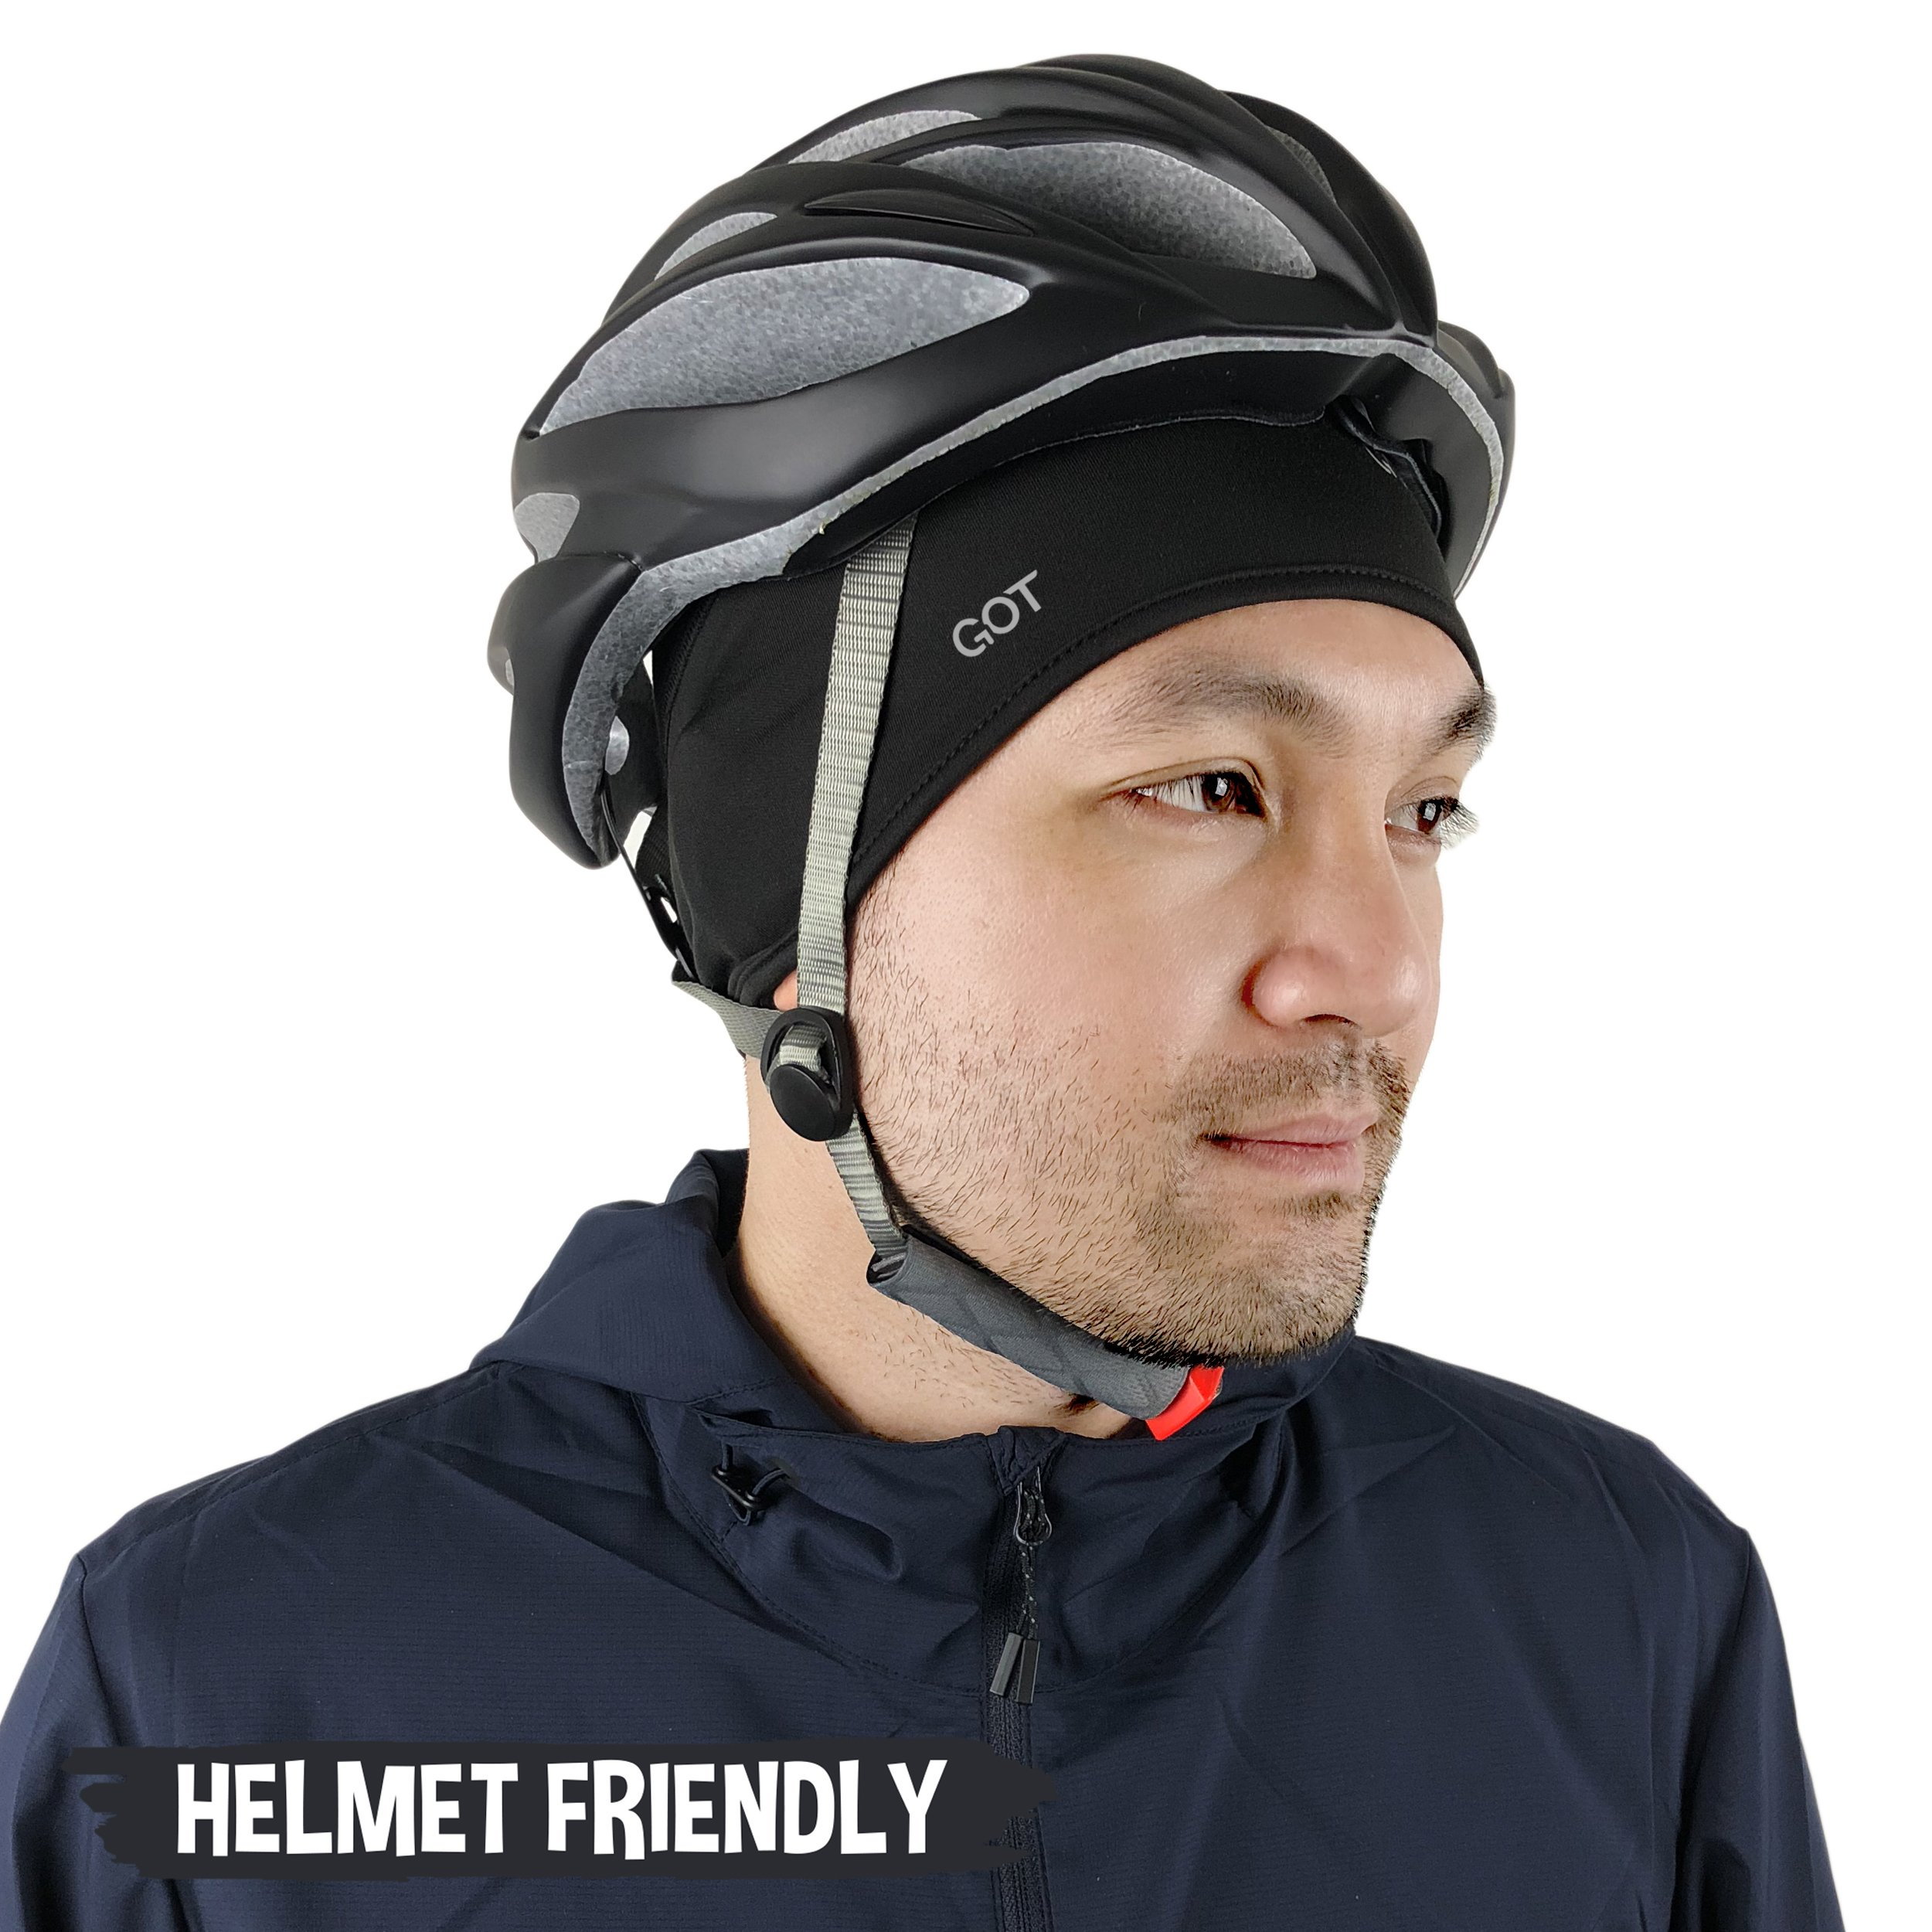 GOT Sports Skull Cap/Helmet Liner/Beanie for Running, Cycling, Motorcycle Riding, Skiing. Thermal Retention and Moisture Wicking Technology by GOT Sports (Image #3)